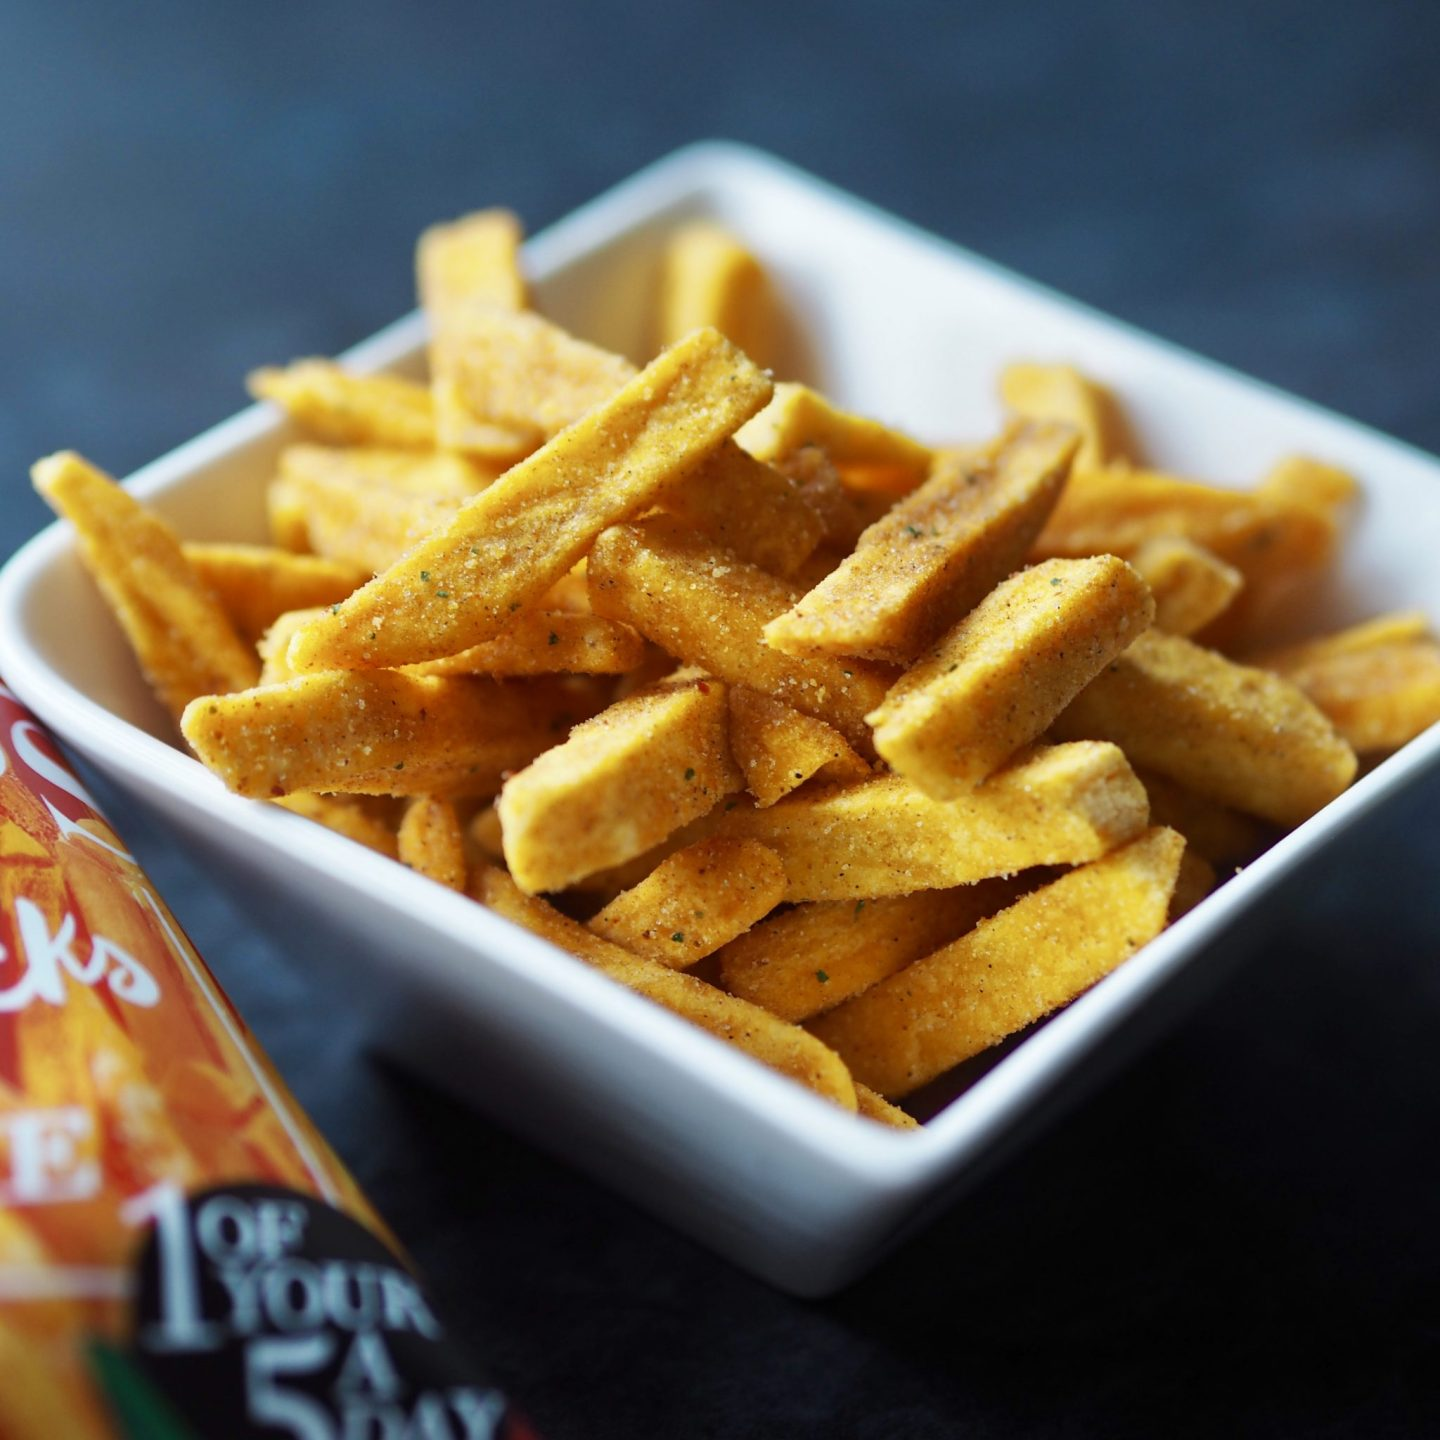 Kelly Crisps are Vegan and gluten-free